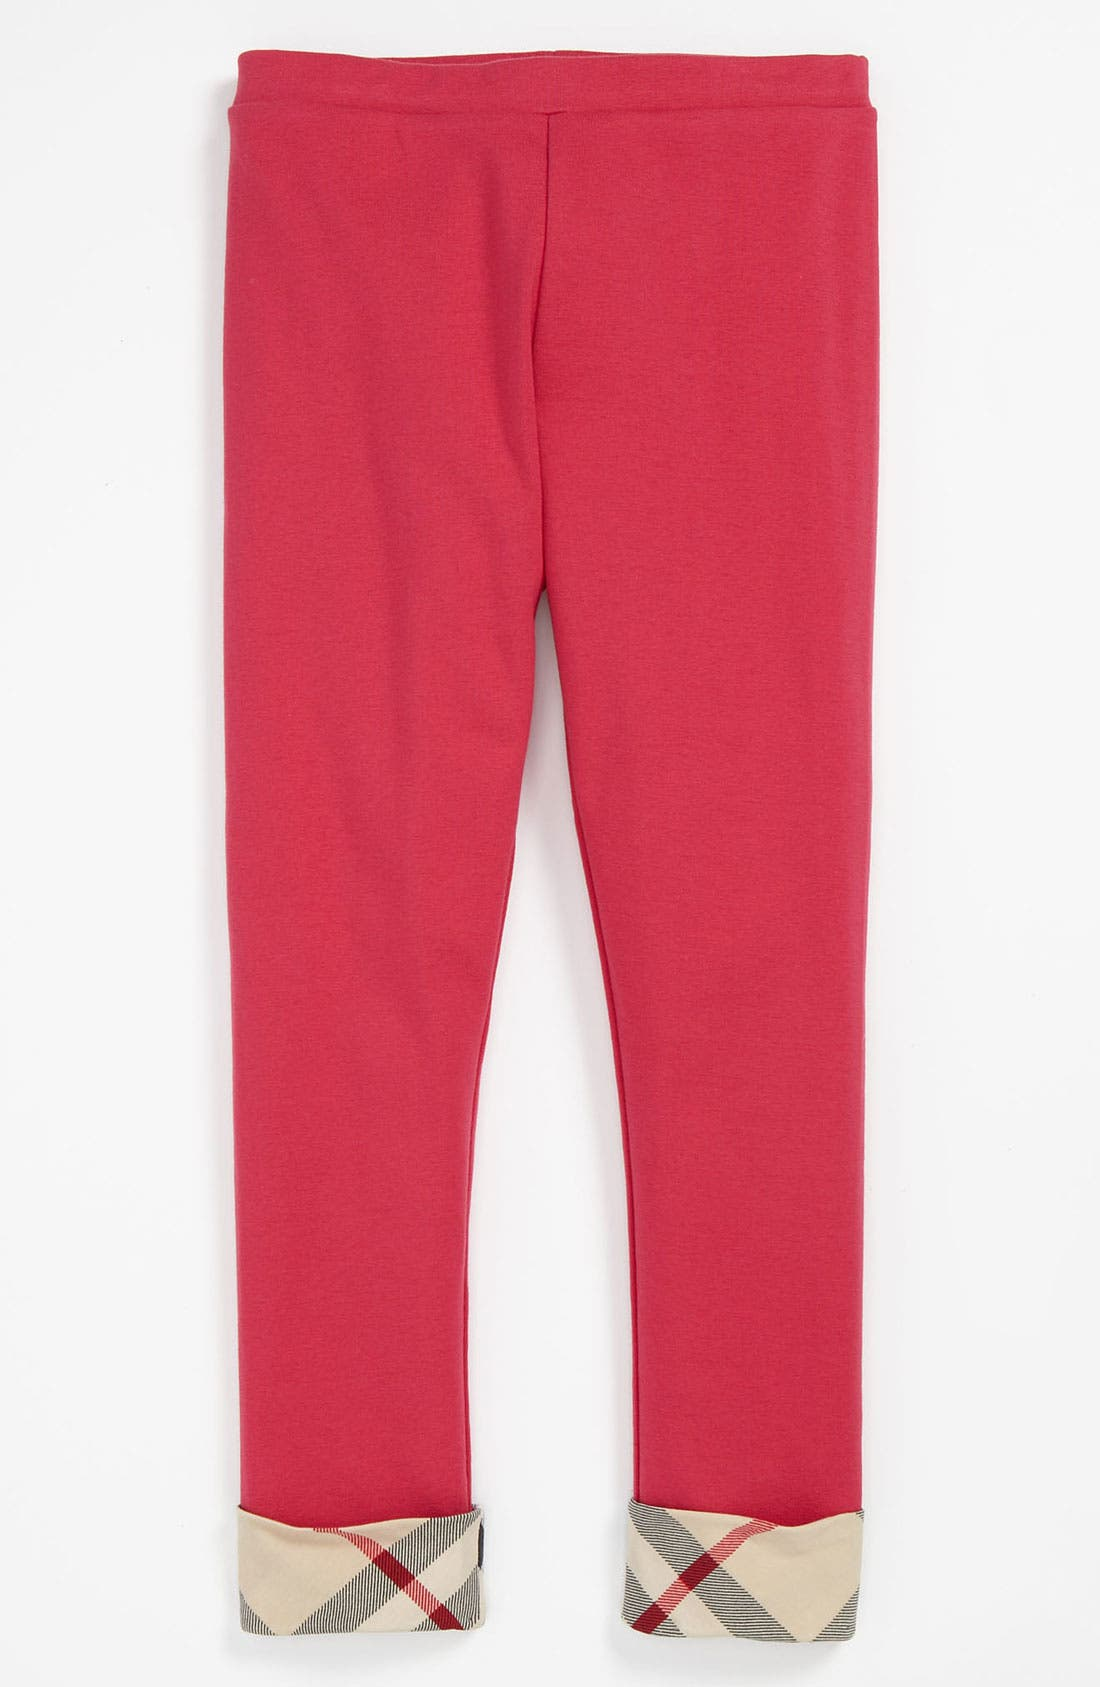 Alternate Image 1 Selected - Burberry 'Laura' Knit Leggings (Little Girls & Big Girls)